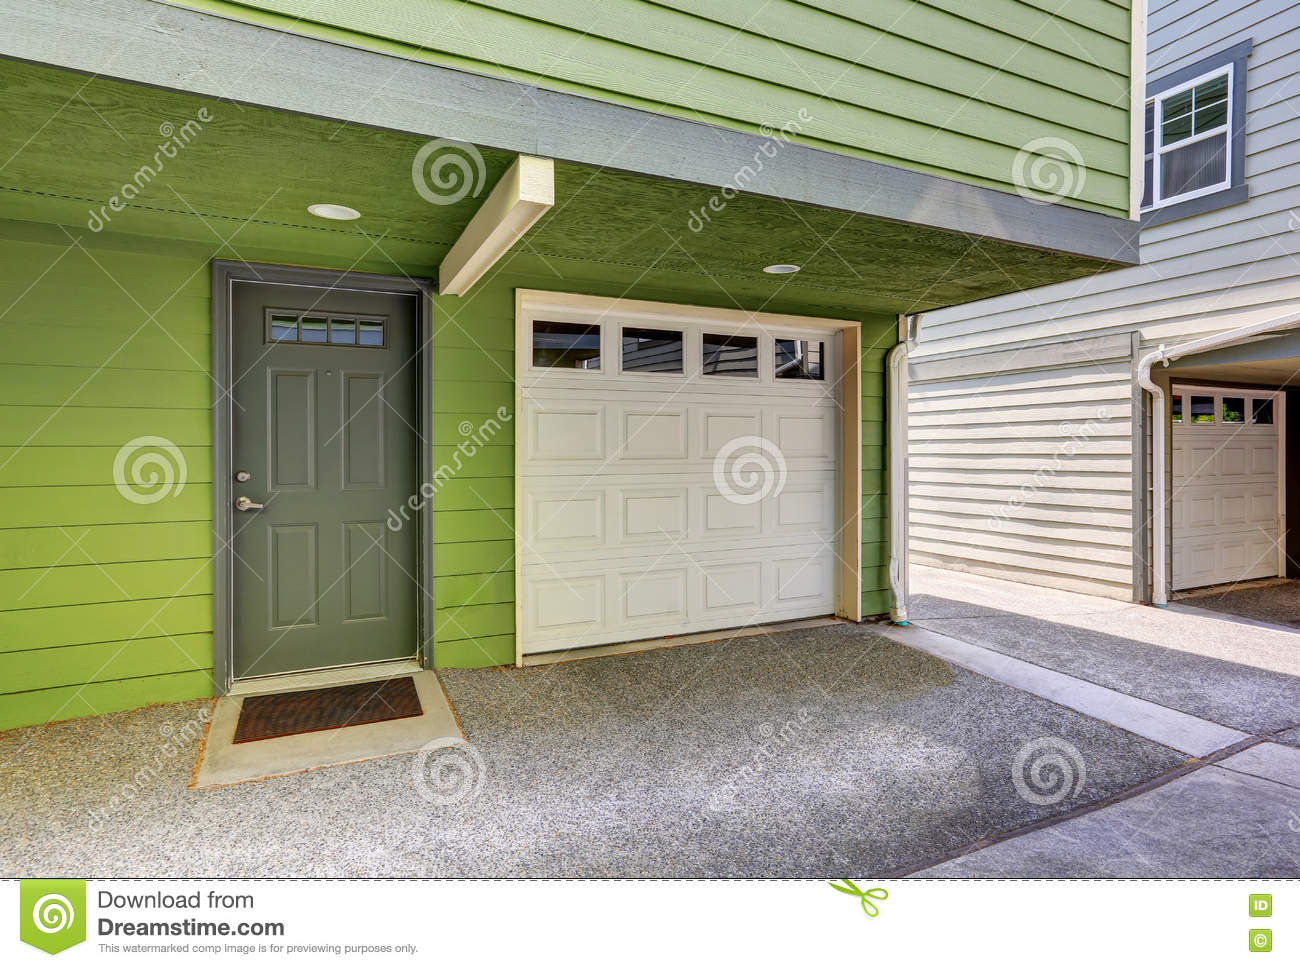 Small entrance porch and garage door of duplex house for Entrance from garage to house